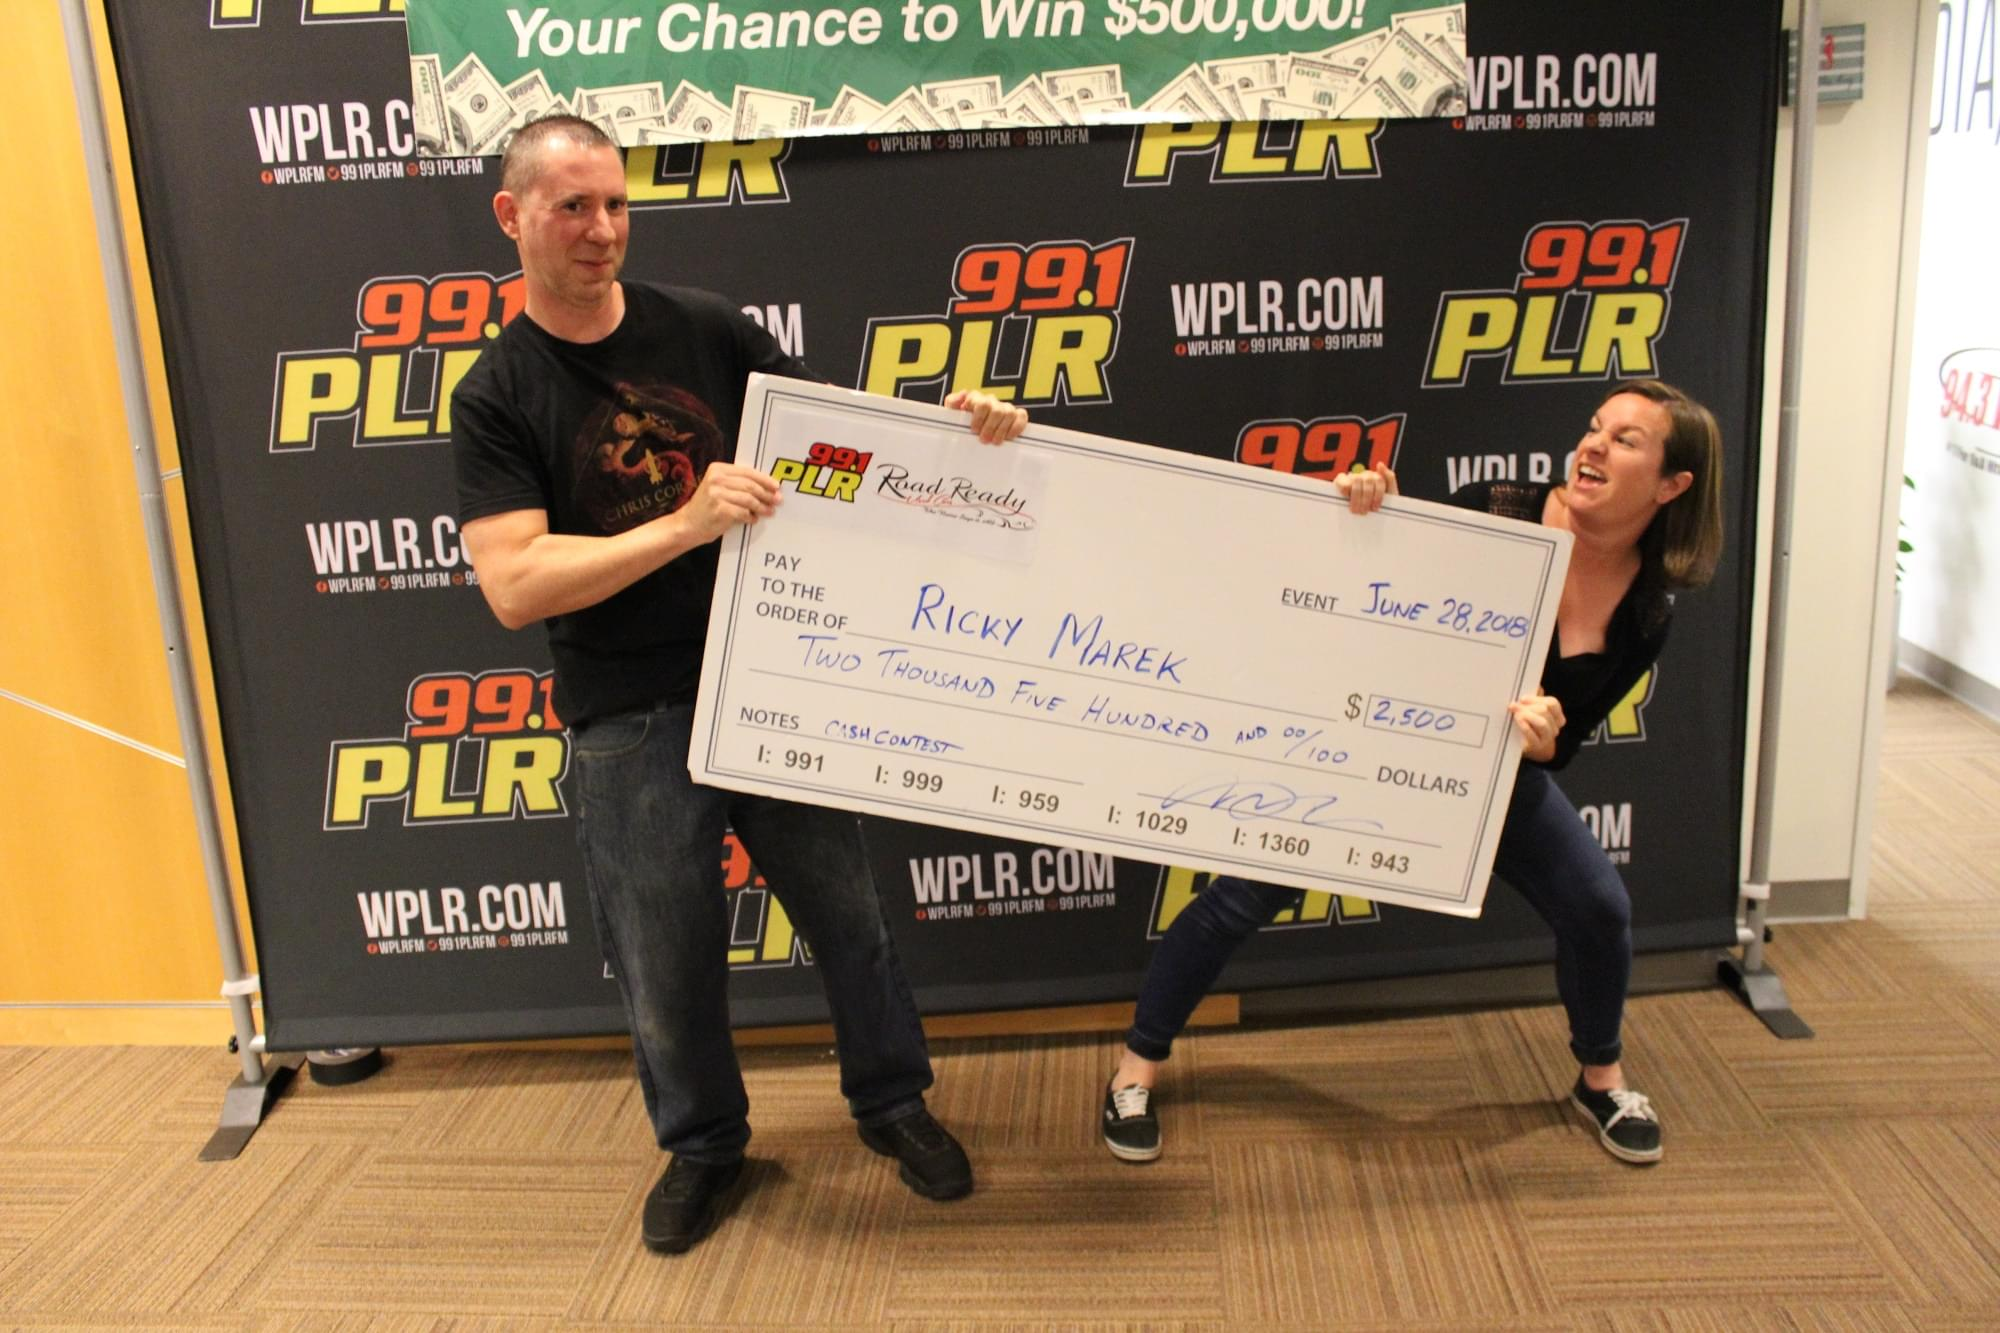 99.1 PLR Road Ready Used Cars $500,000 Cash Cow Grand Prize Winner ...